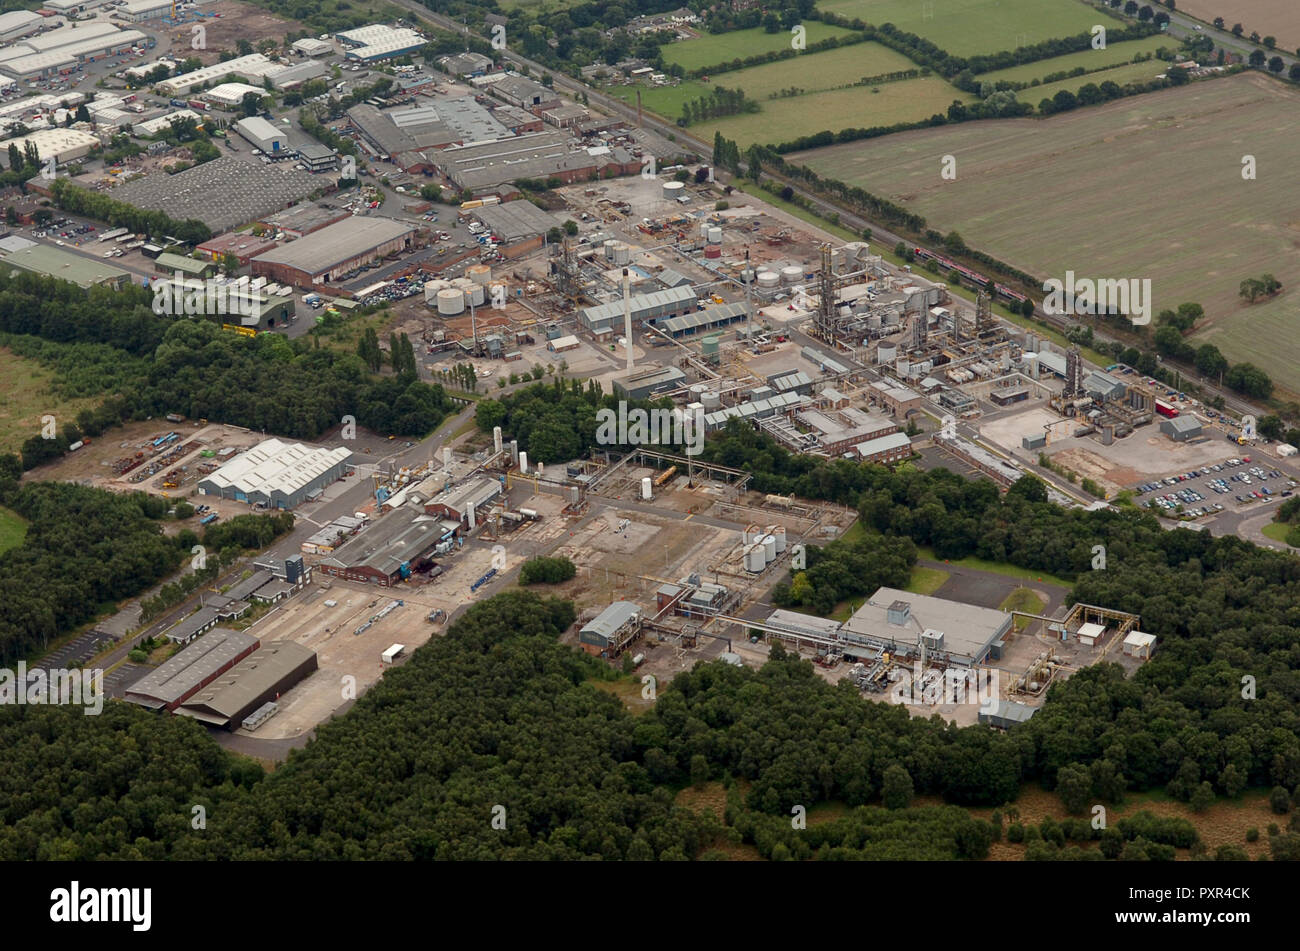 Aerial view of Chemical works at Four Ashes in Staffordshire Uk run by Schenectady Europe Ltd. - Stock Image